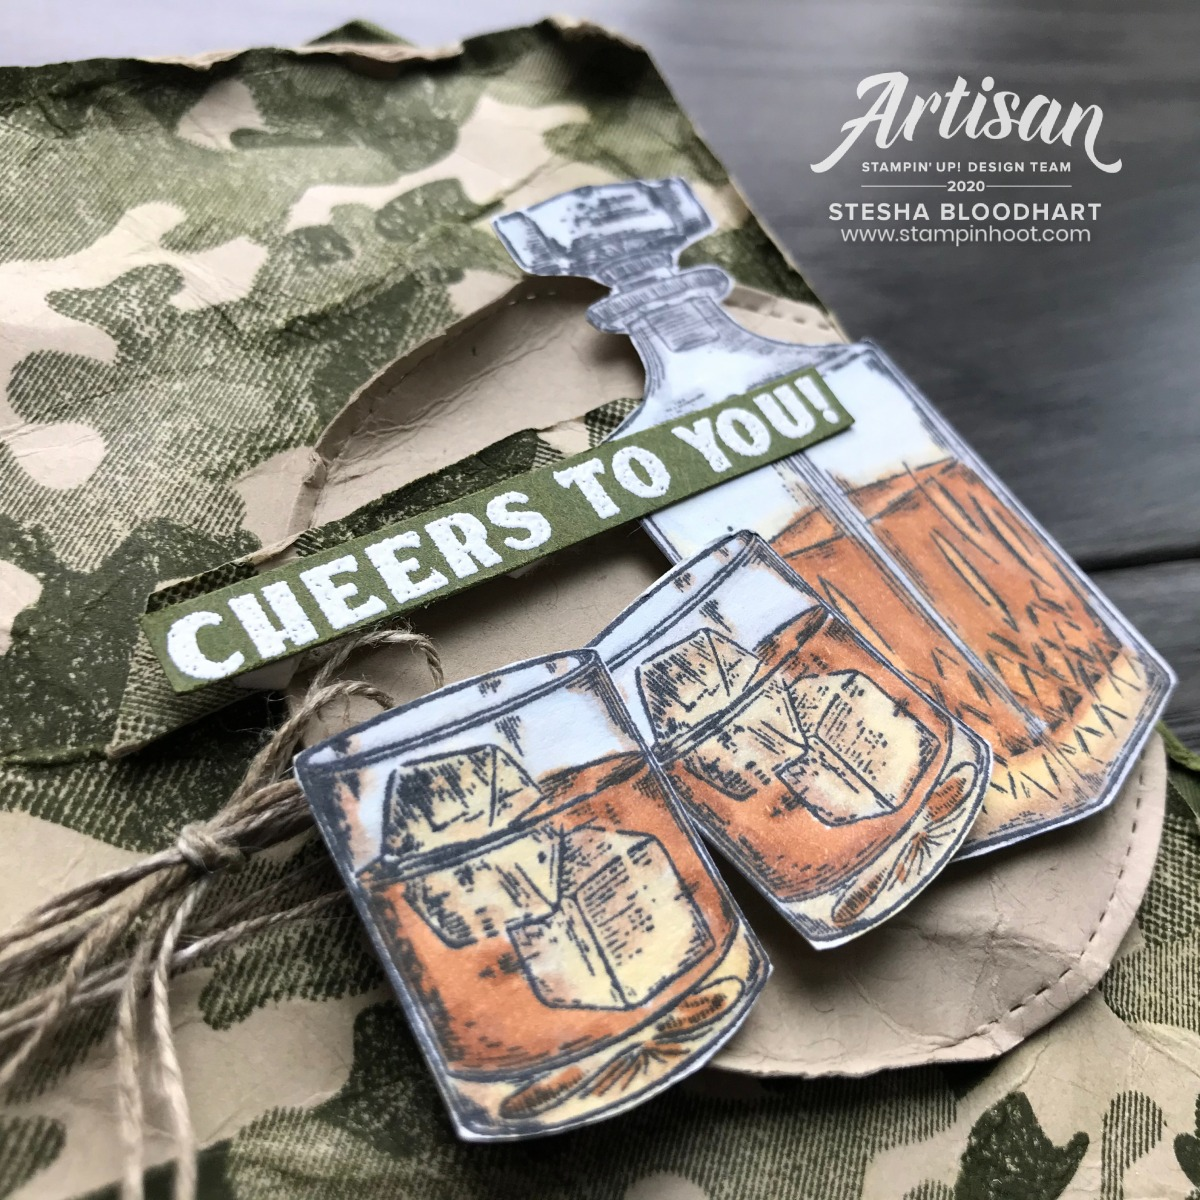 Whiskey Business and Camouflage Stamp Sets from Stampin' Up! Cheers to You Card by Stesha Bloodhart, Stampin' Hoot!